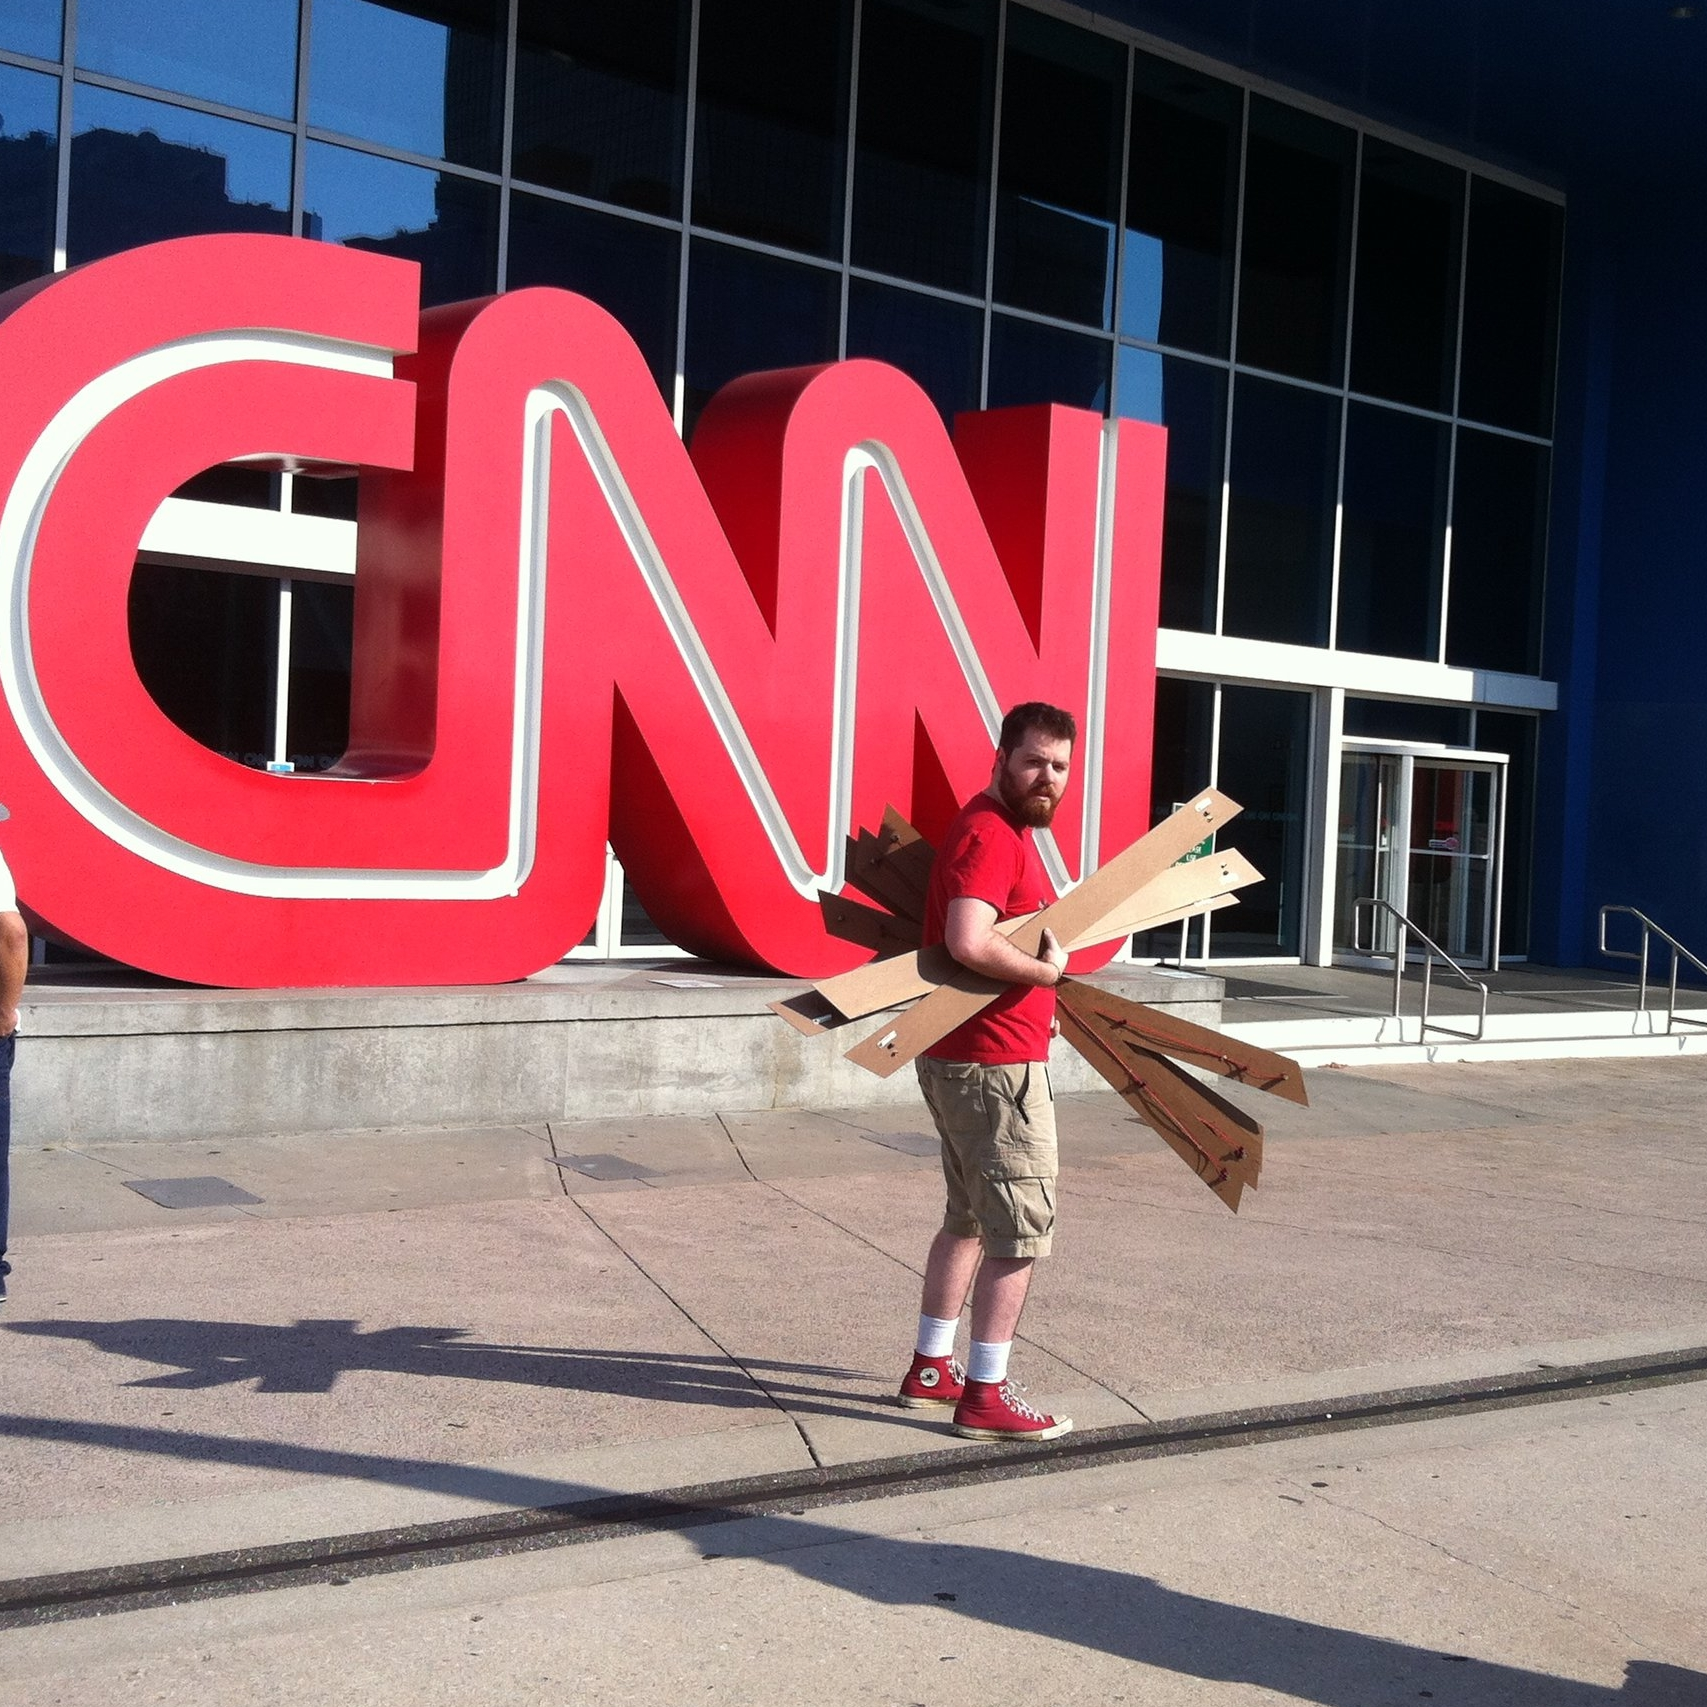 Caught on the way to being installed at CNN